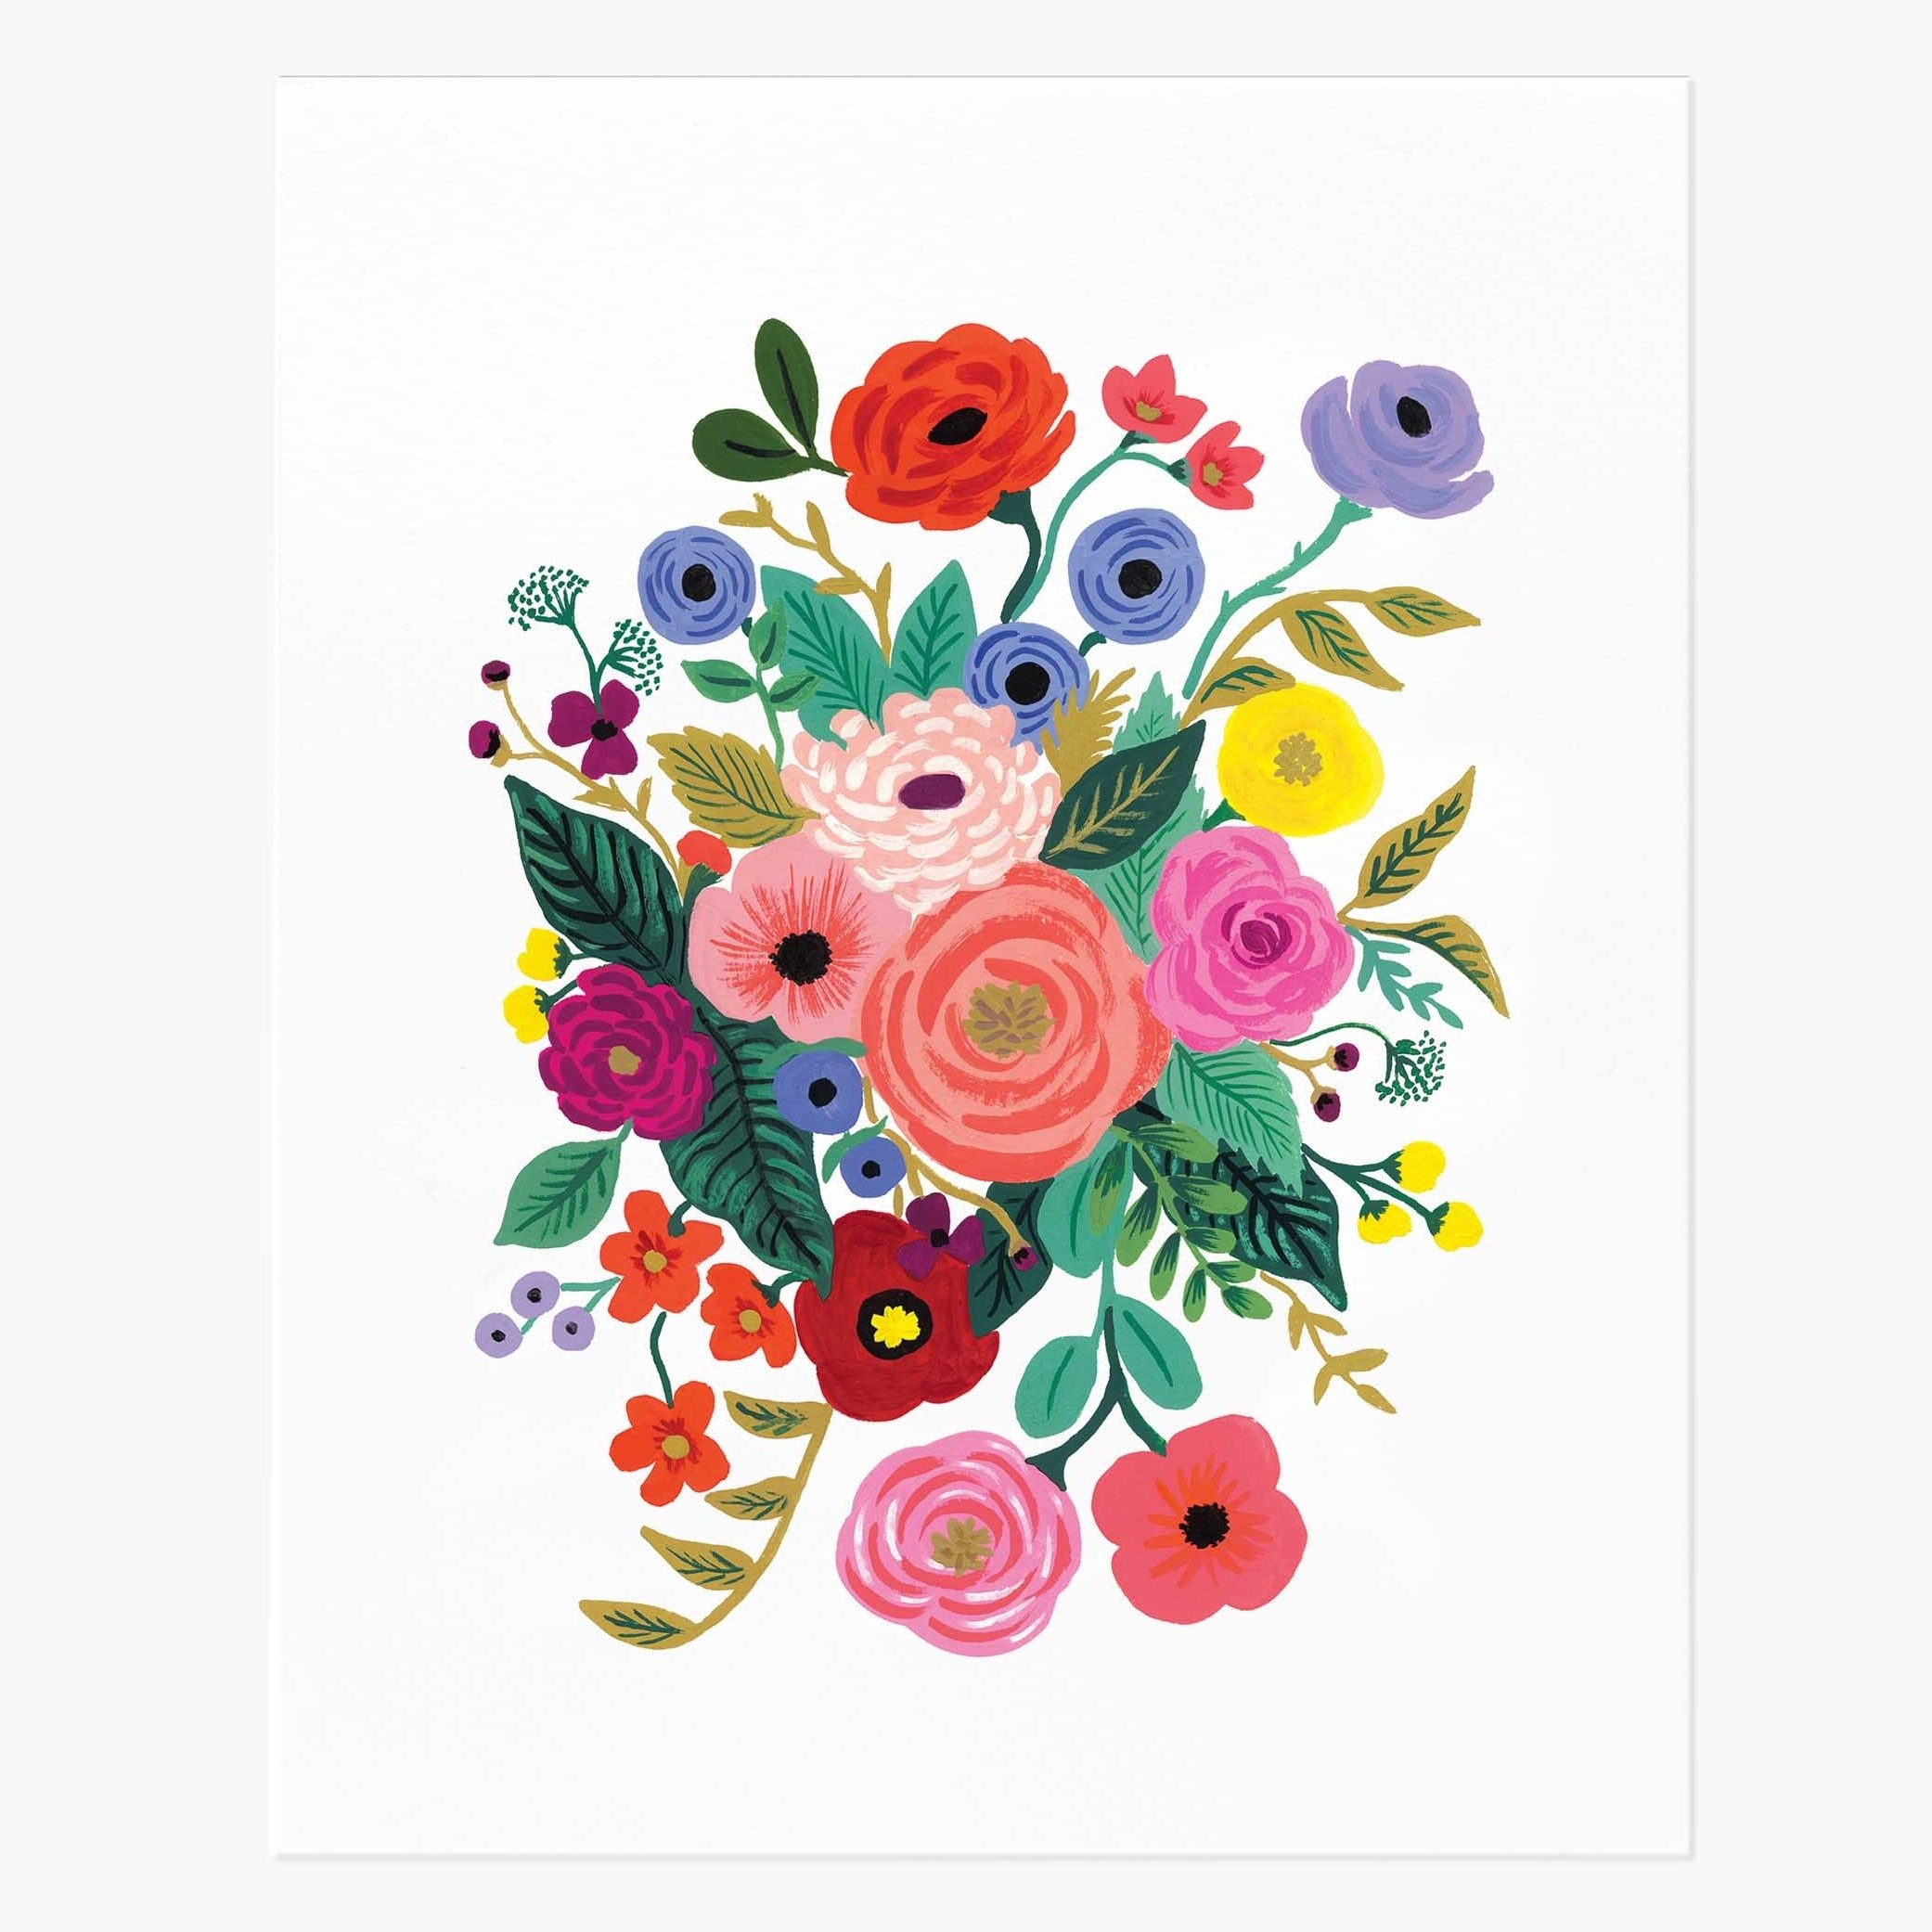 Flowers art print by Rifle Design